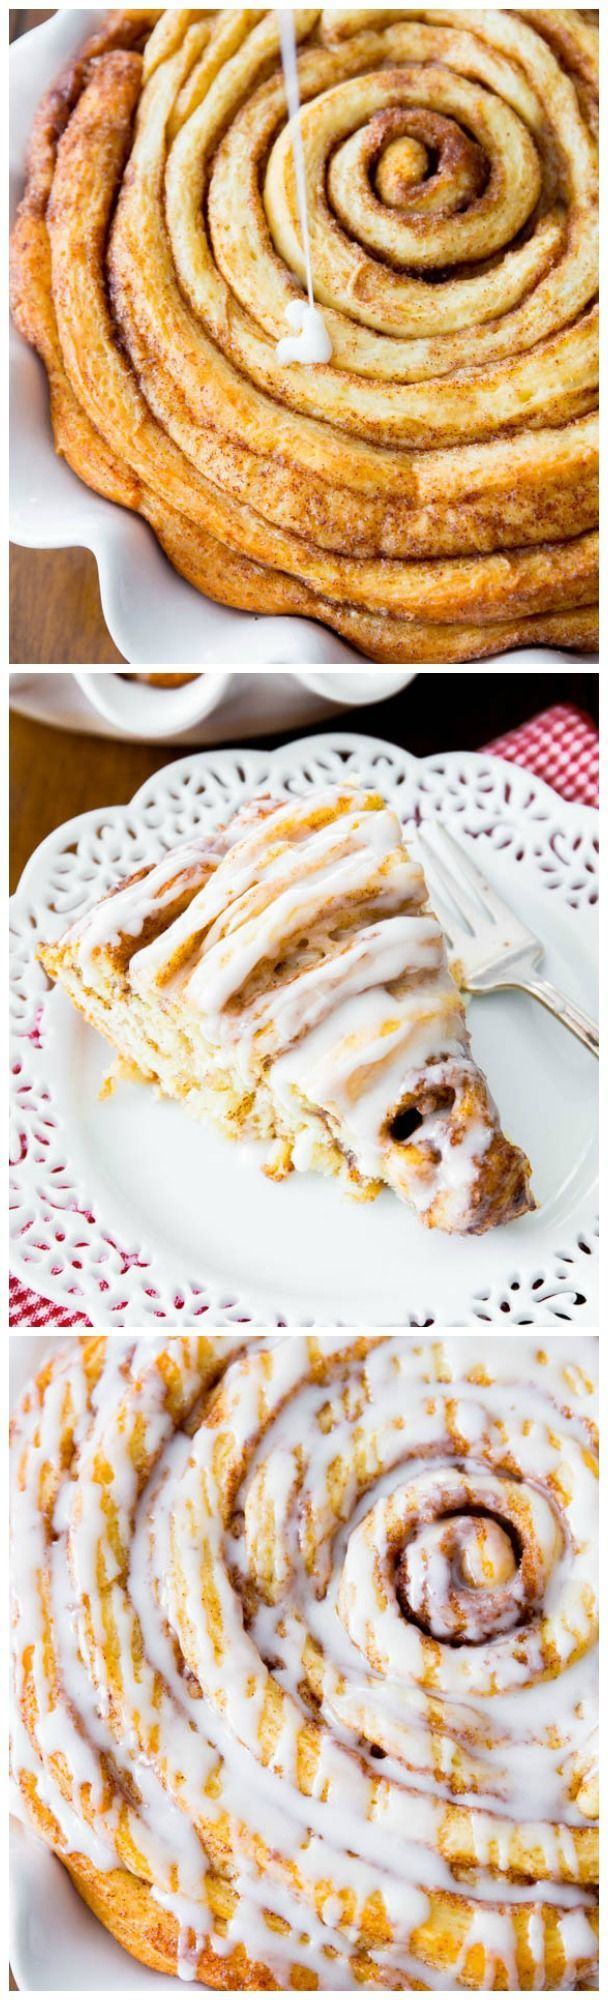 Learn how to make a beautiful, fluffy, and soft cinnamon roll cake using this kitchen-tested dough recipe! I love this site http://porkrecipe.org/posts/Learn-how-to-make-a-beautiful-fluffy-and-49236